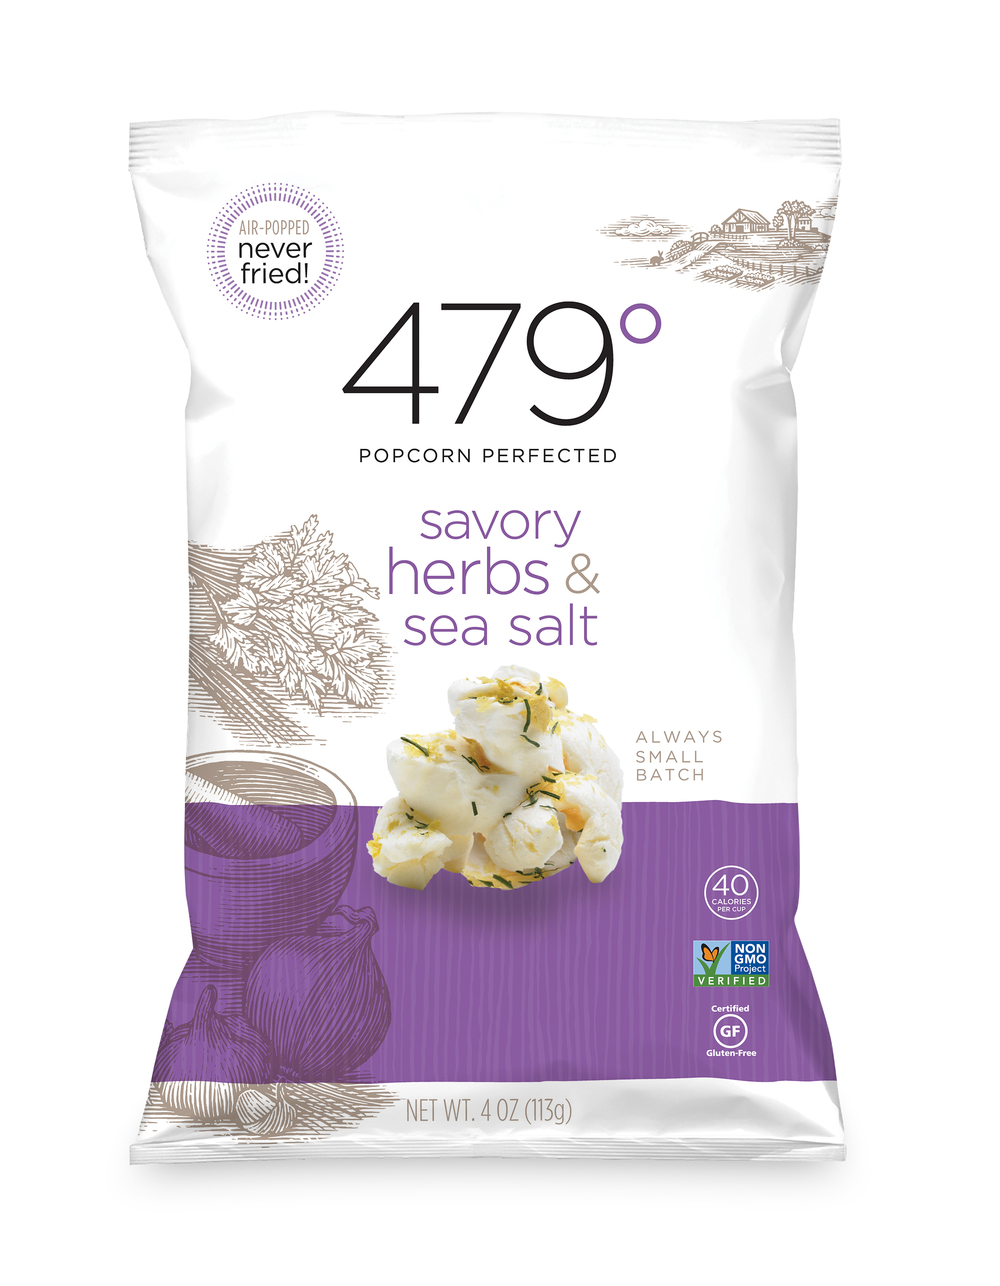 4oz savory hearbs & sea salt